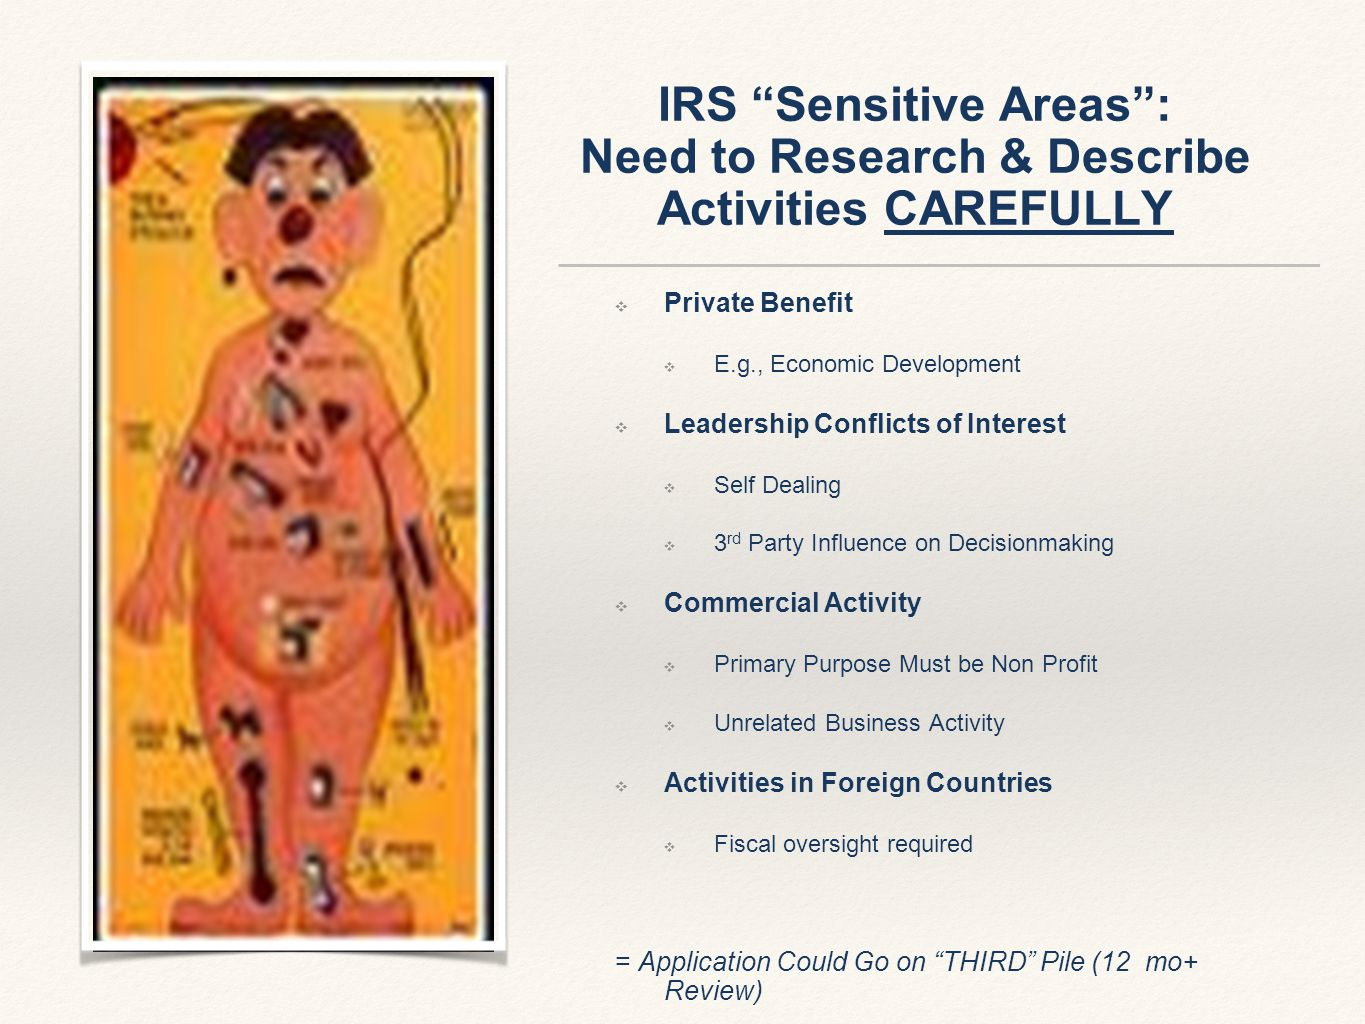 IRS Sensitive Areas : Need to Research & Describe Activities CAREFULLY ❖ Private Benefit ❖ E.g., Economic Development ❖ Leadership Conflicts of Interest ❖ Self Dealing ❖ 3 rd Party Influence on Decisionmaking ❖ Commercial Activity ❖ Primary Purpose Must be Non Profit ❖ Unrelated Business Activity ❖ Activities in Foreign Countries ❖ Fiscal oversight required = Application Could Go on THIRD Pile (12 mo+ Review)